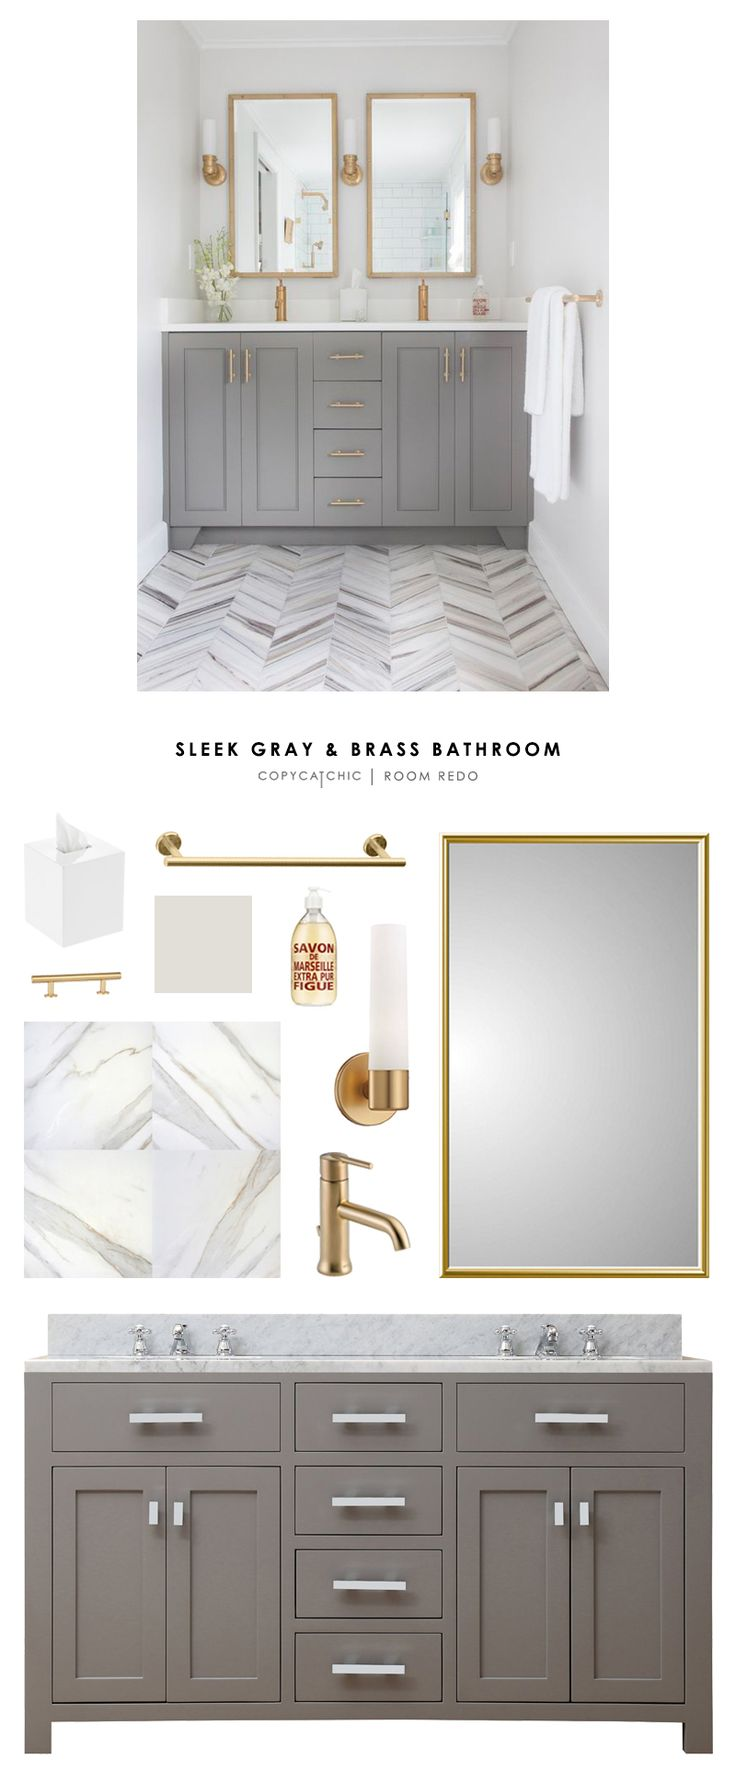 Copy Cat Chic Room Redo | Sleek Gray and Brass Bathroom